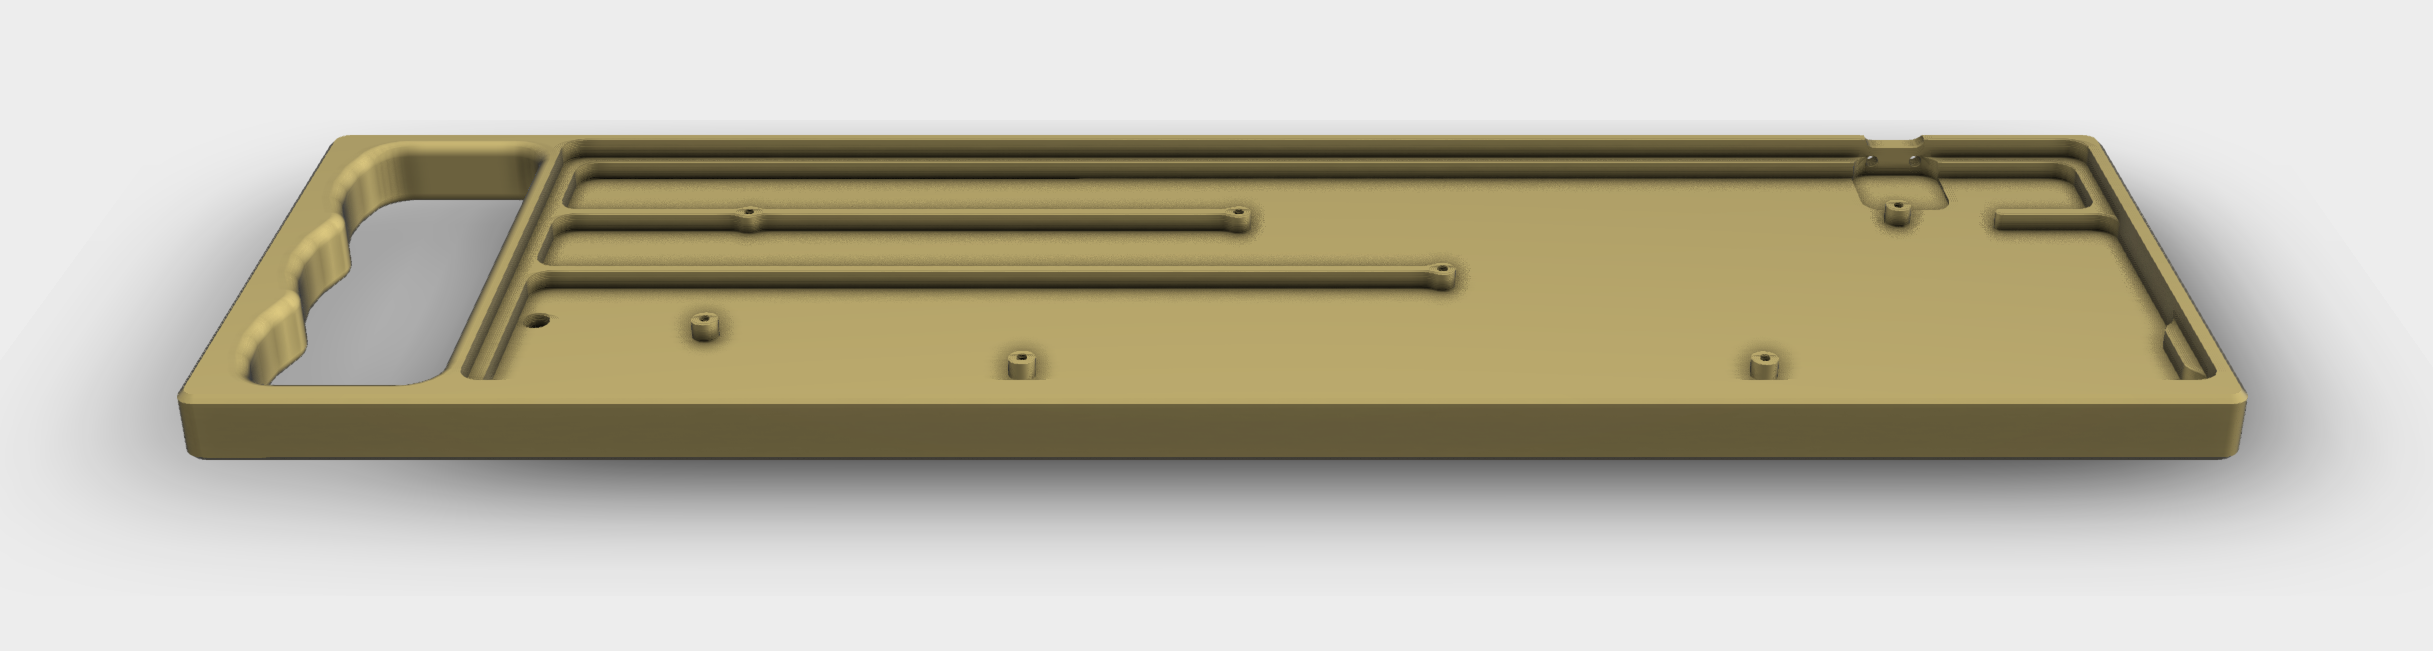 Render of the Sketchport Shuttle showing modified USB port location